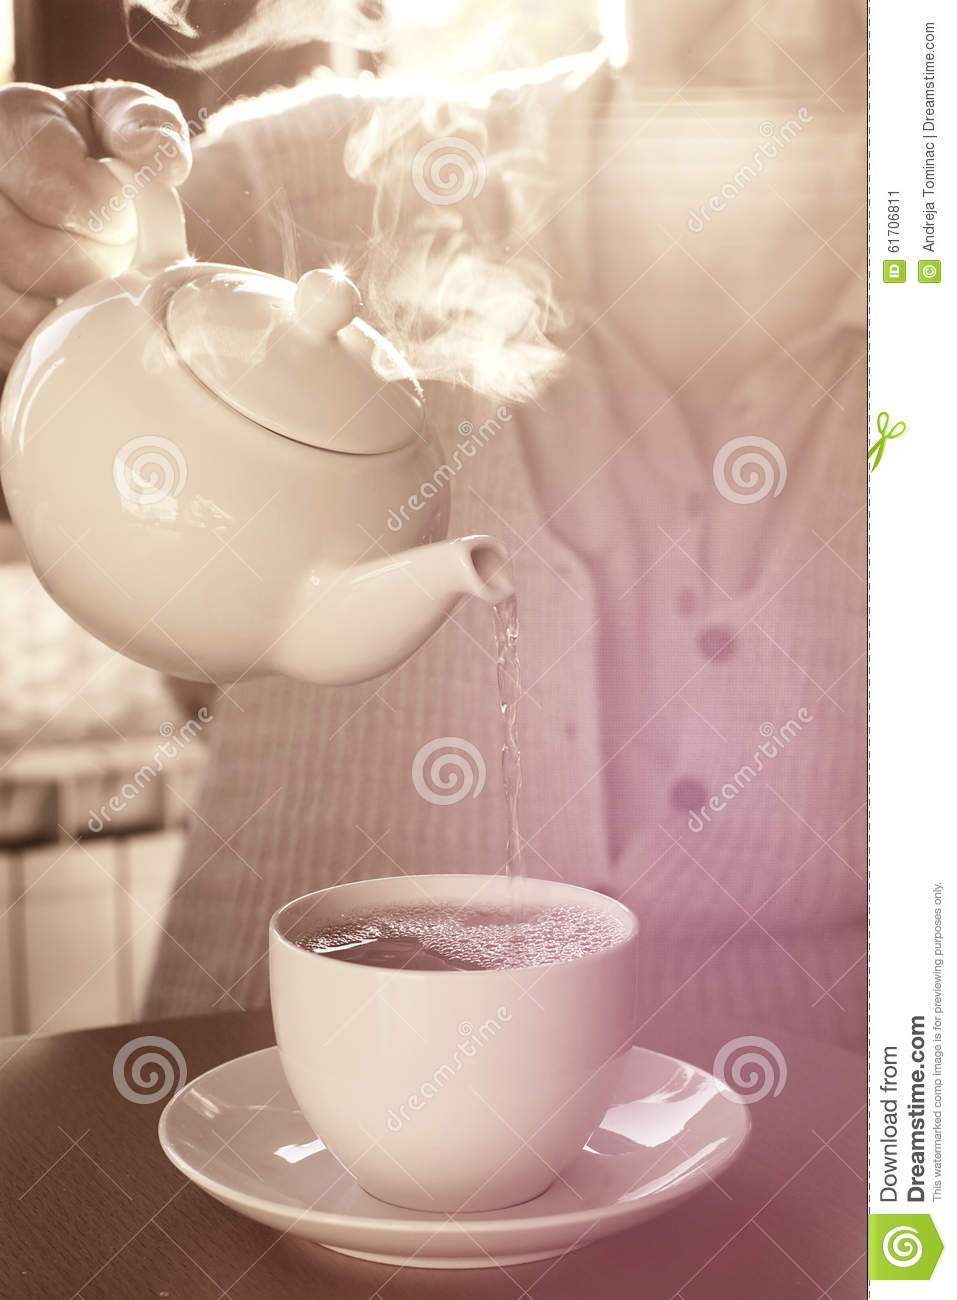 Pouring The Cup Of Tea